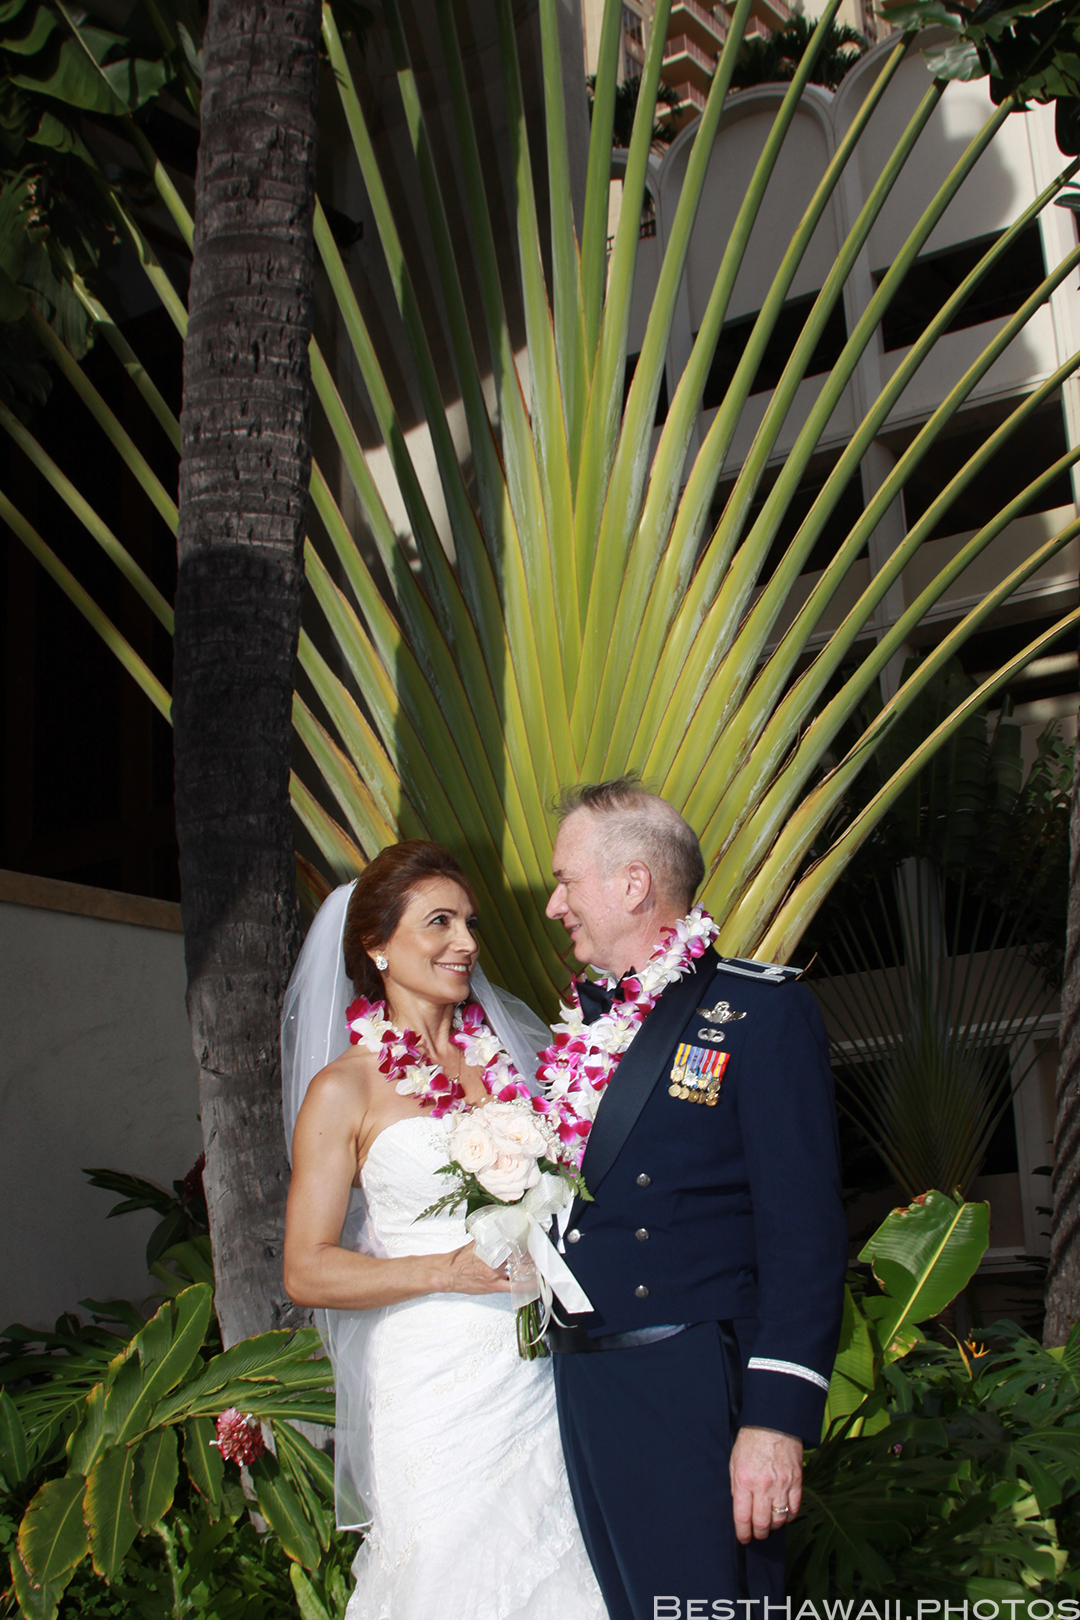 Wedding Photos at Hilton Hawaiian Village by Pasha www.BestHawaii.photos 121820158640